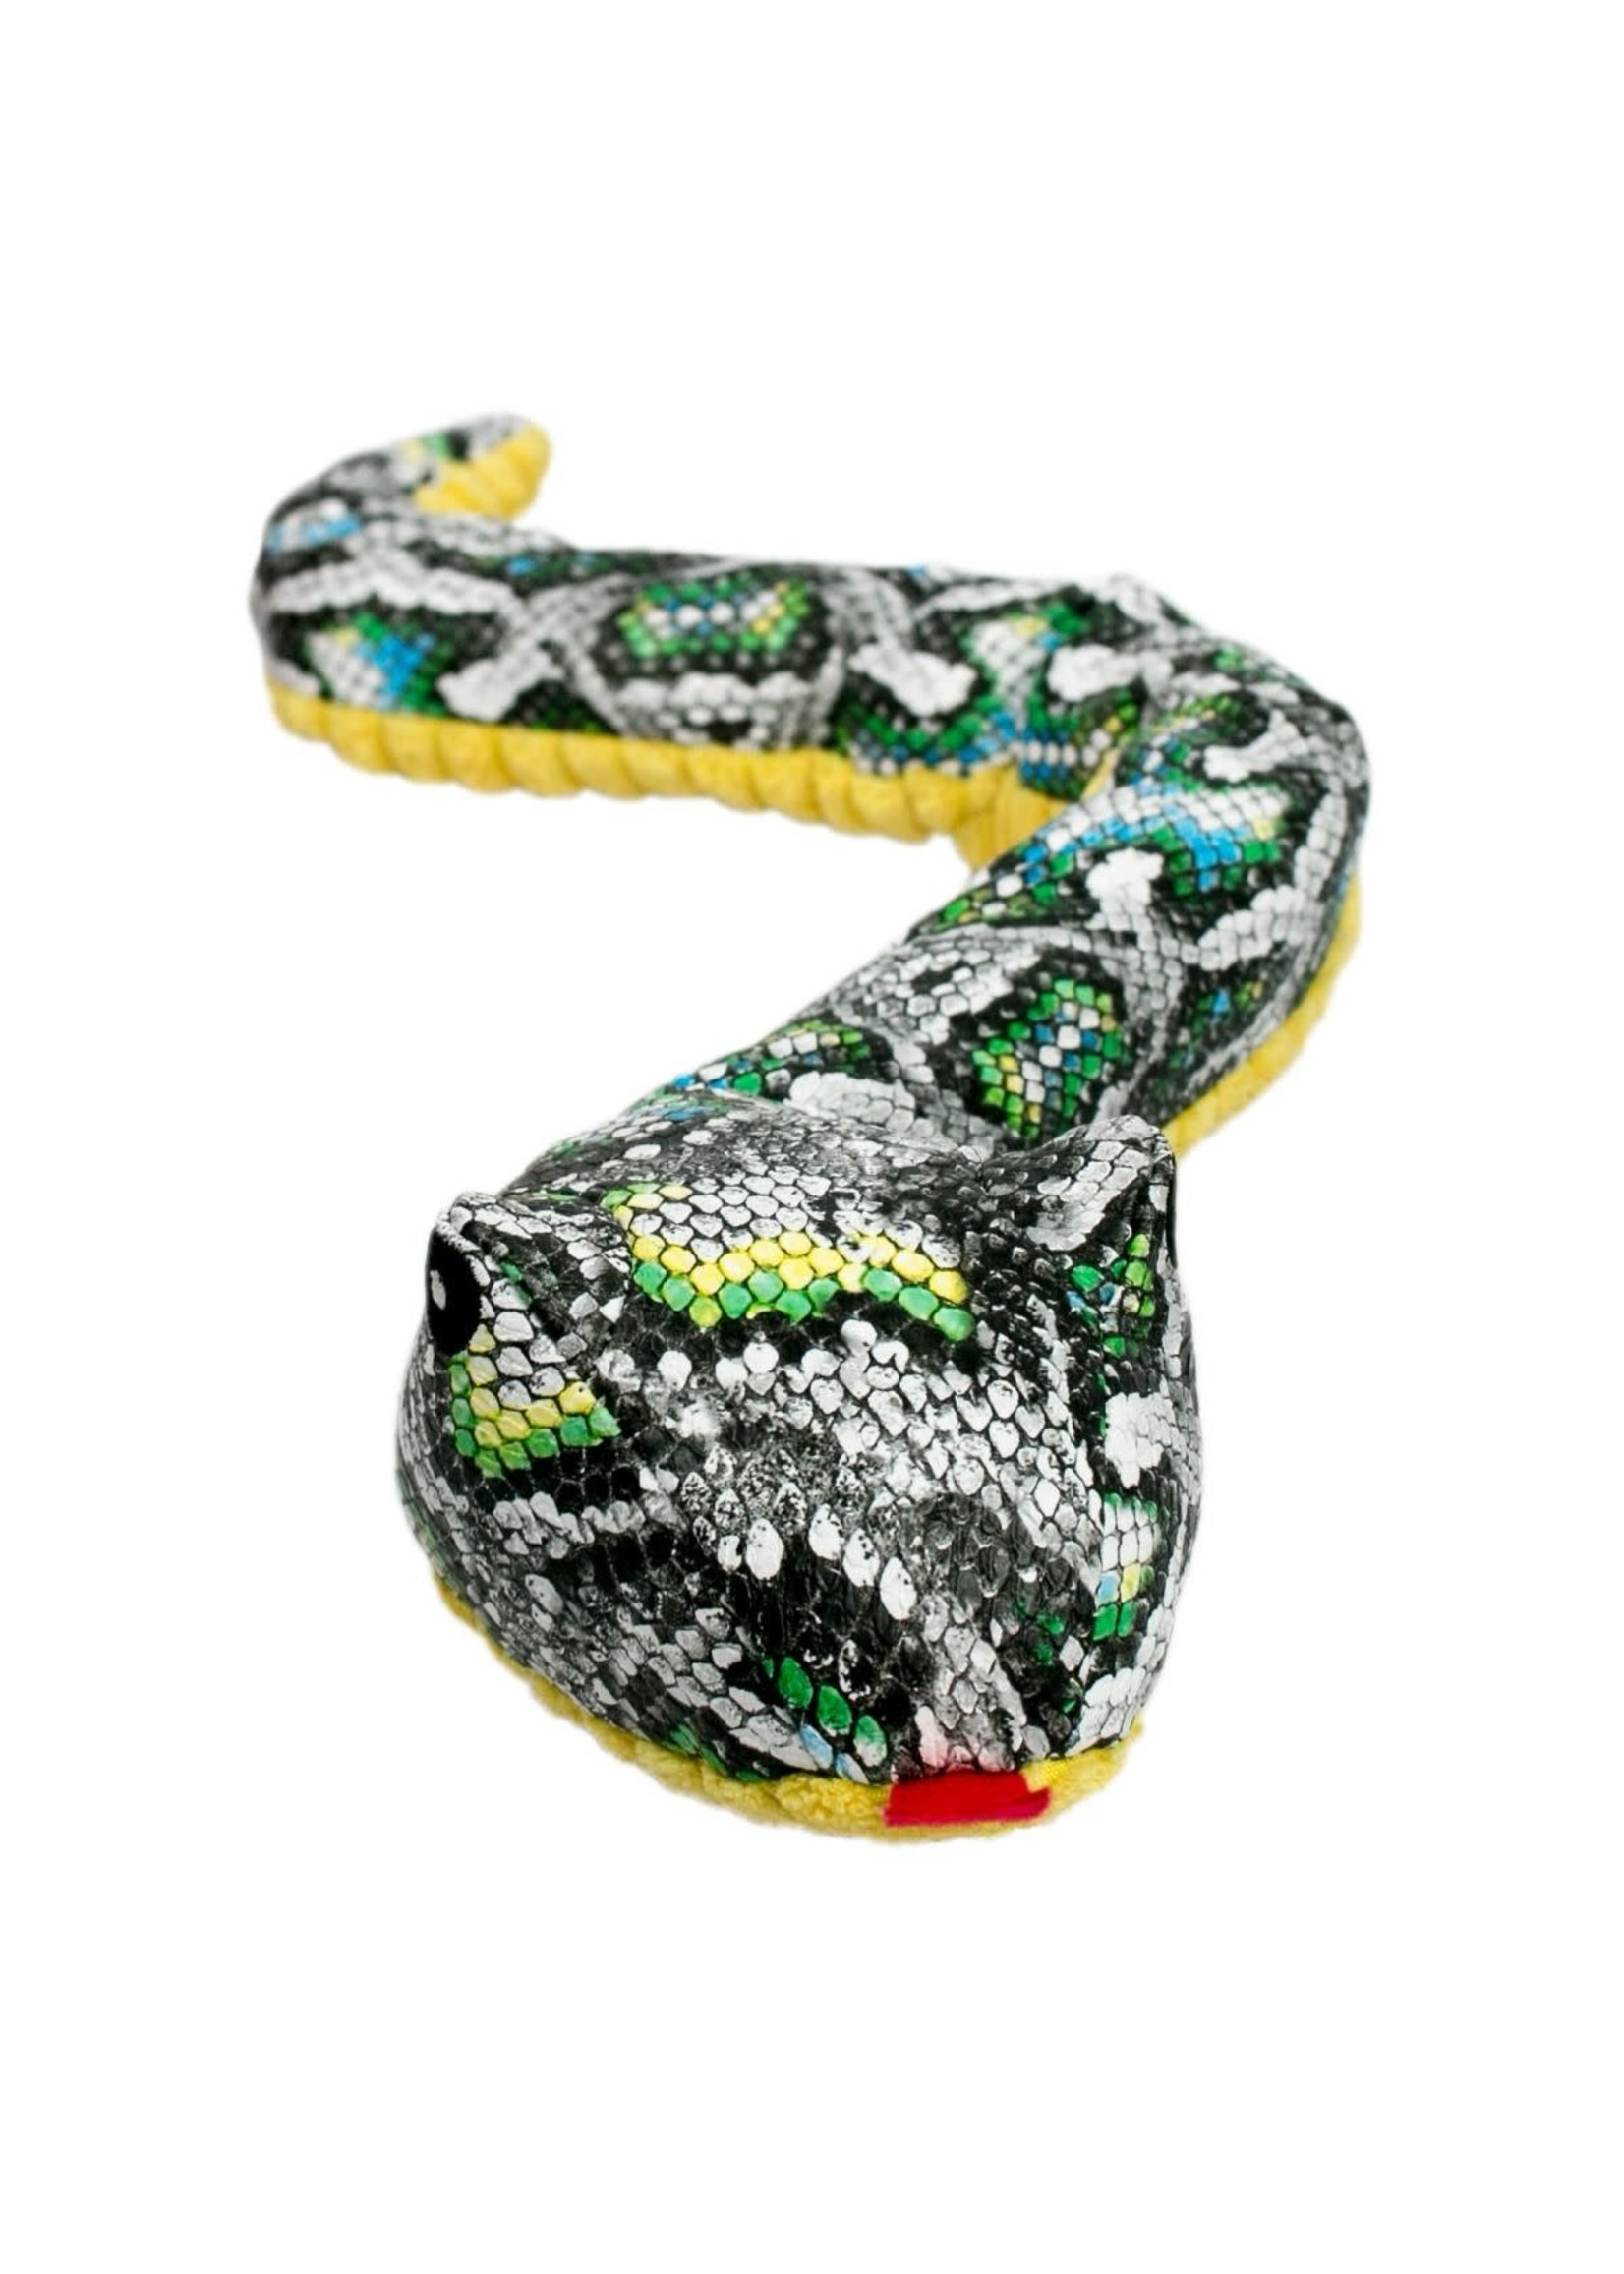 """Tall Tails Tall Tails Plush Crunch Snake 23"""""""